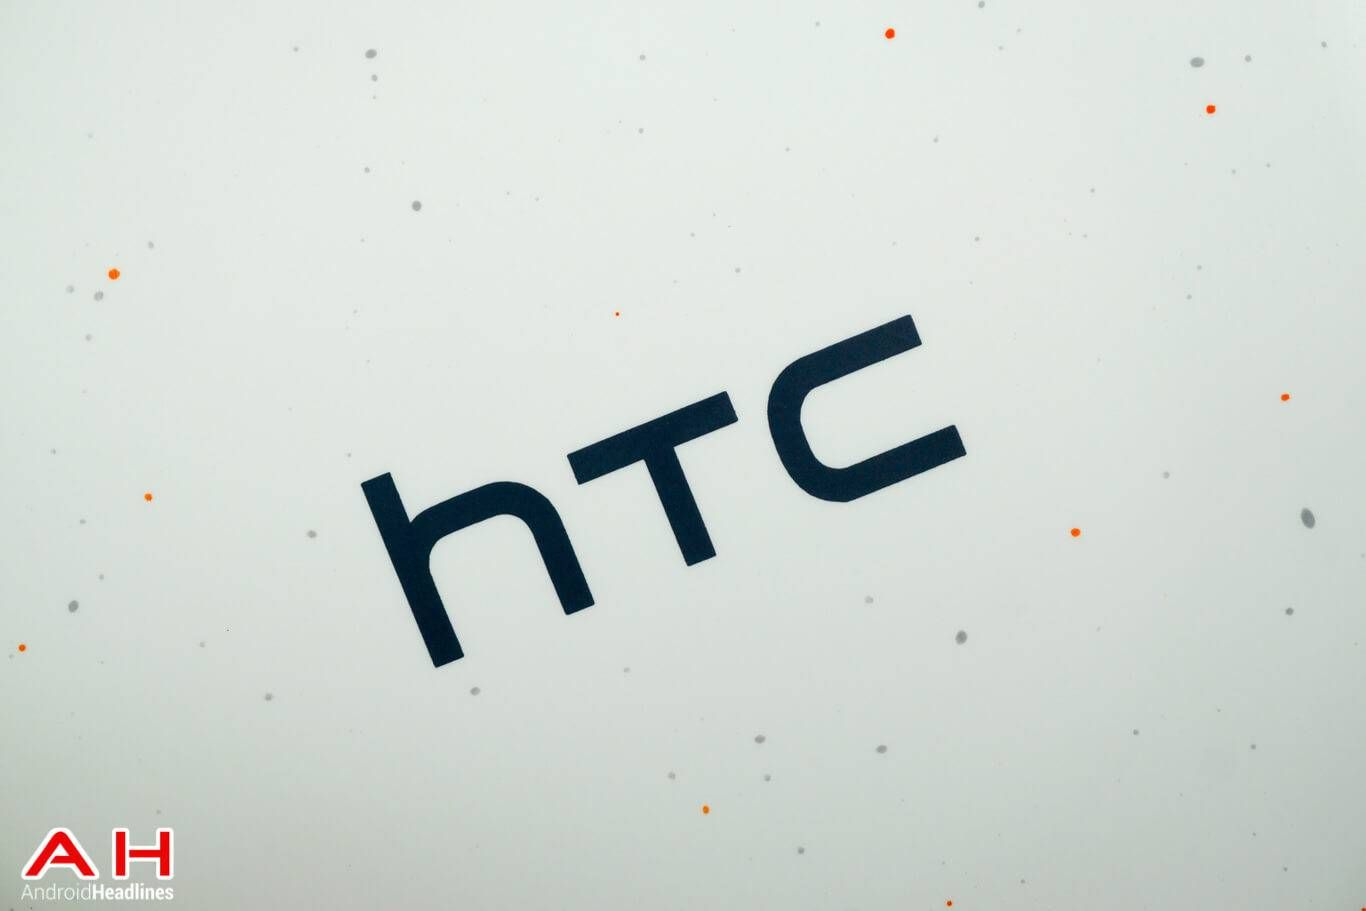 Black Friday Discounts Come Early at HTC #android #google #smartphones